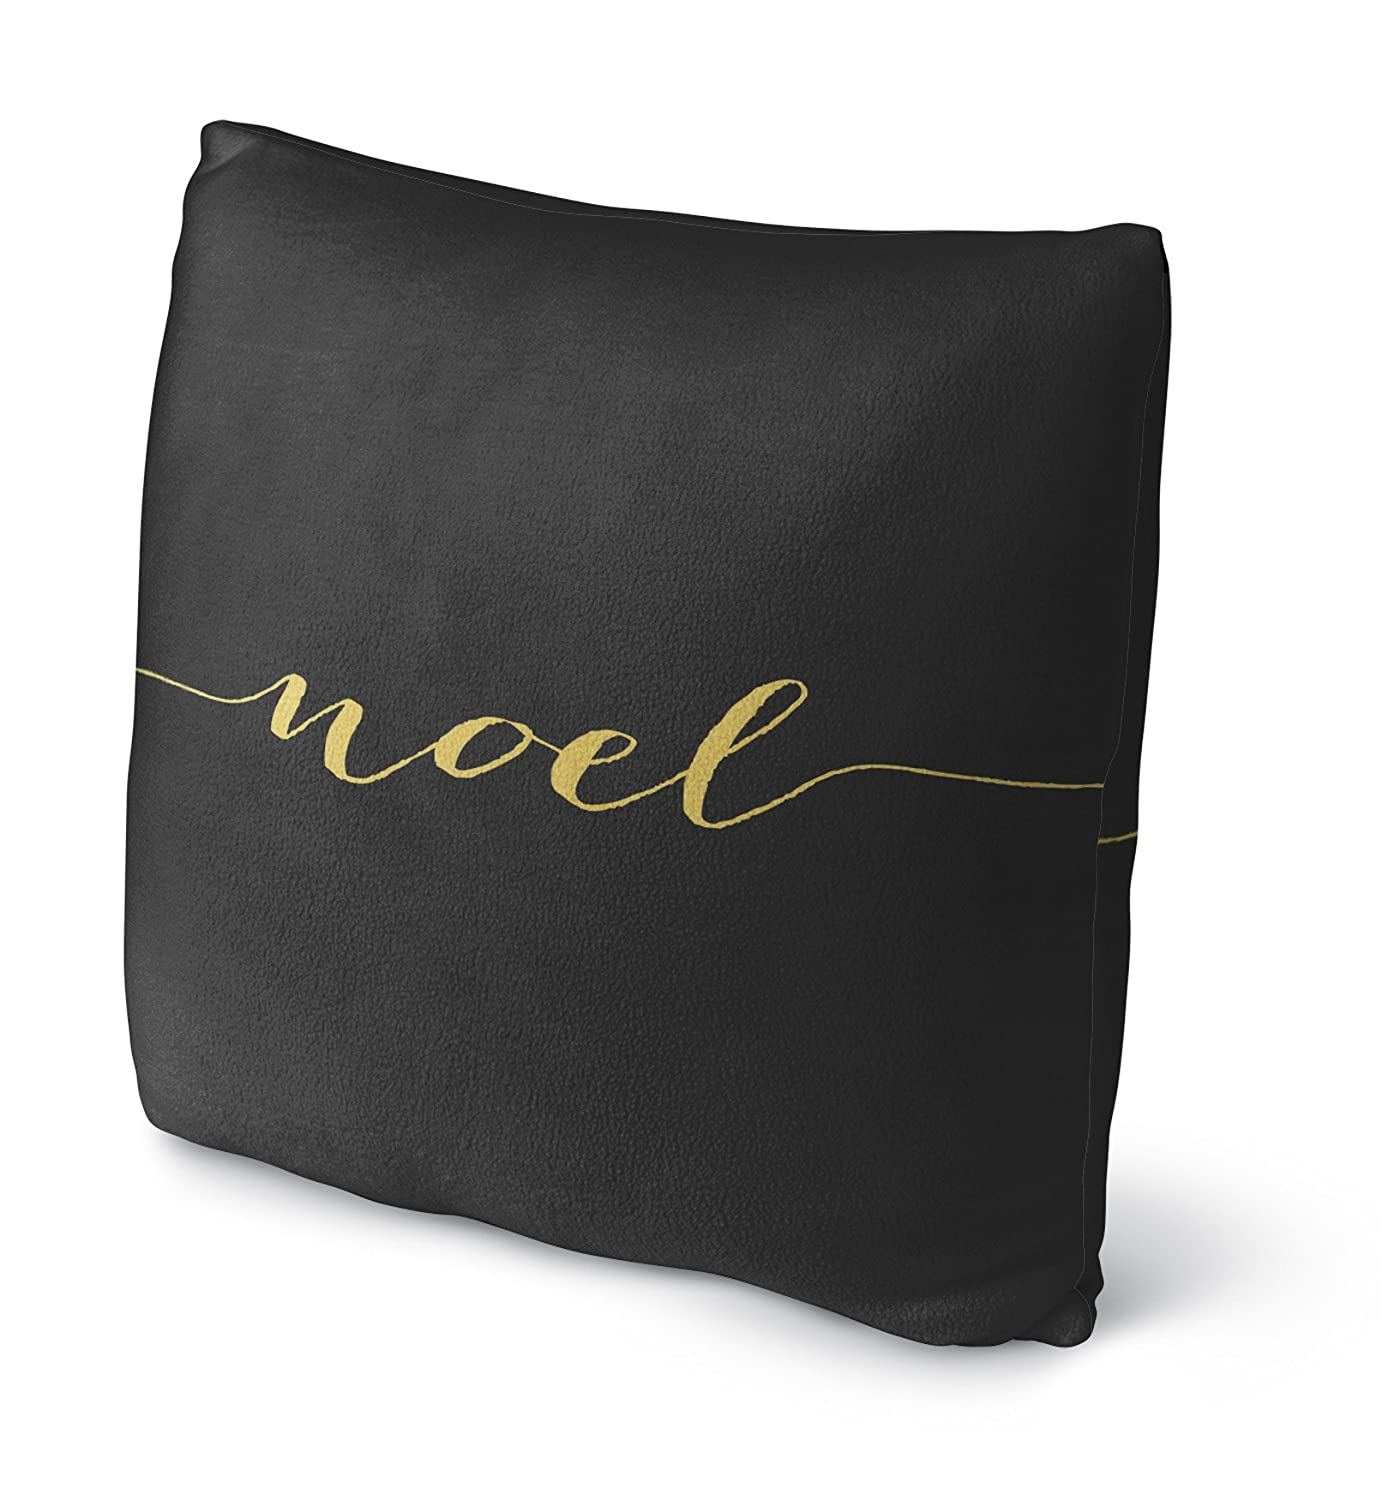 Black//Gold RVIAVC1516FBS18 KAVKA Designs Noel Fleece Throw Pillow, Size: 18X18X4 - - TRADITIONS Collection